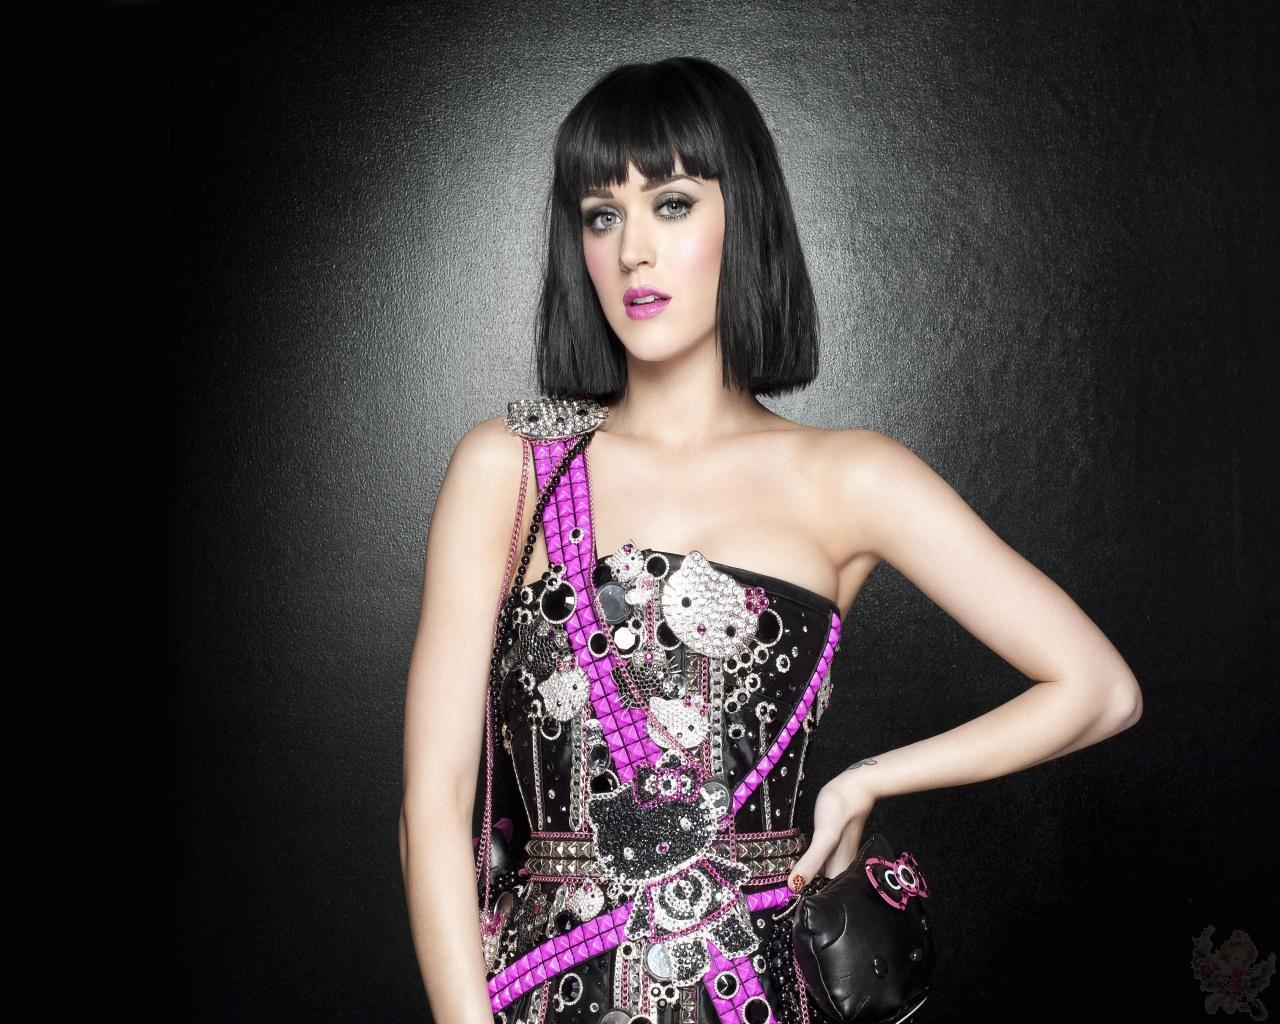 Katy Perry: Hot Wallpapers-Katy Perry